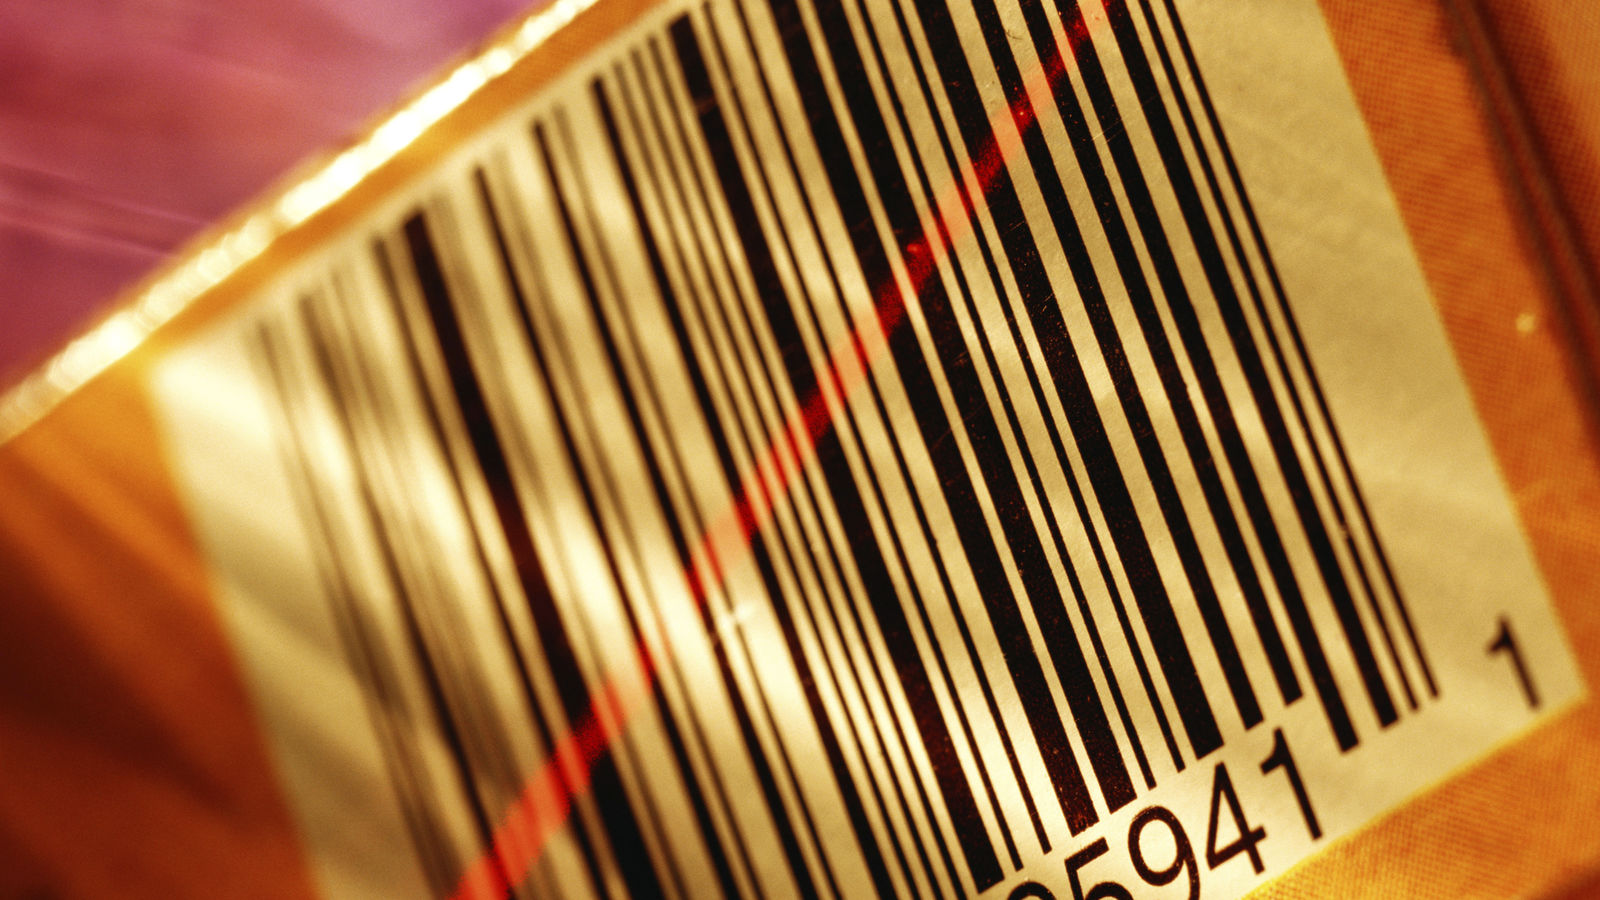 Retail Bar Code Being Scanned with Red Laser